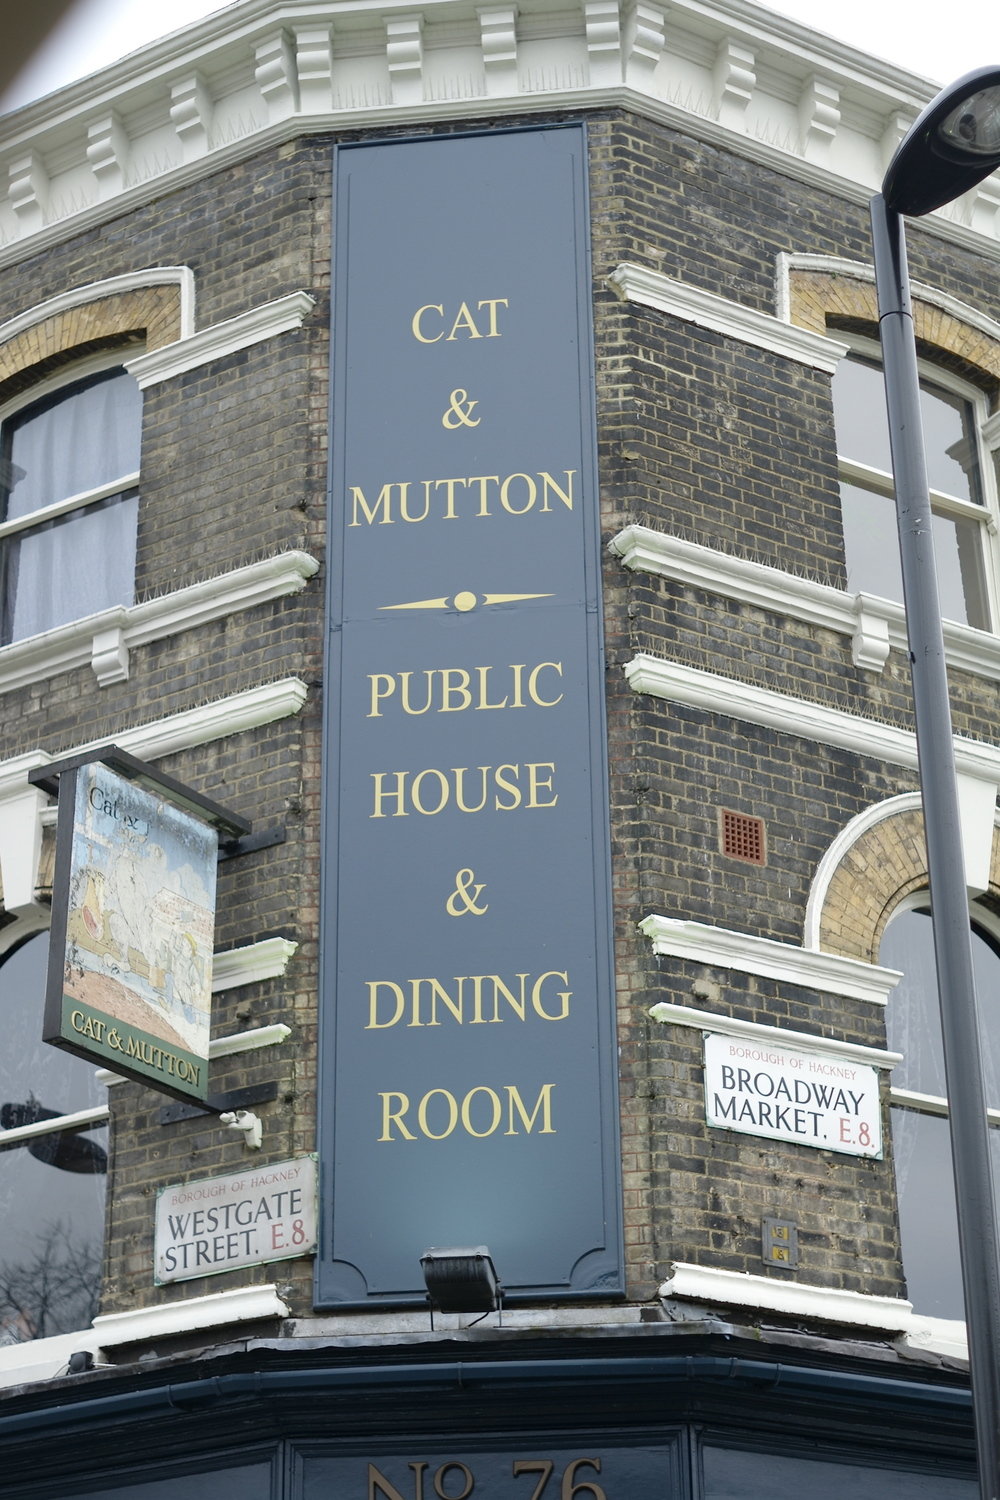 cs Broadway Market Street - Cat & Mutton